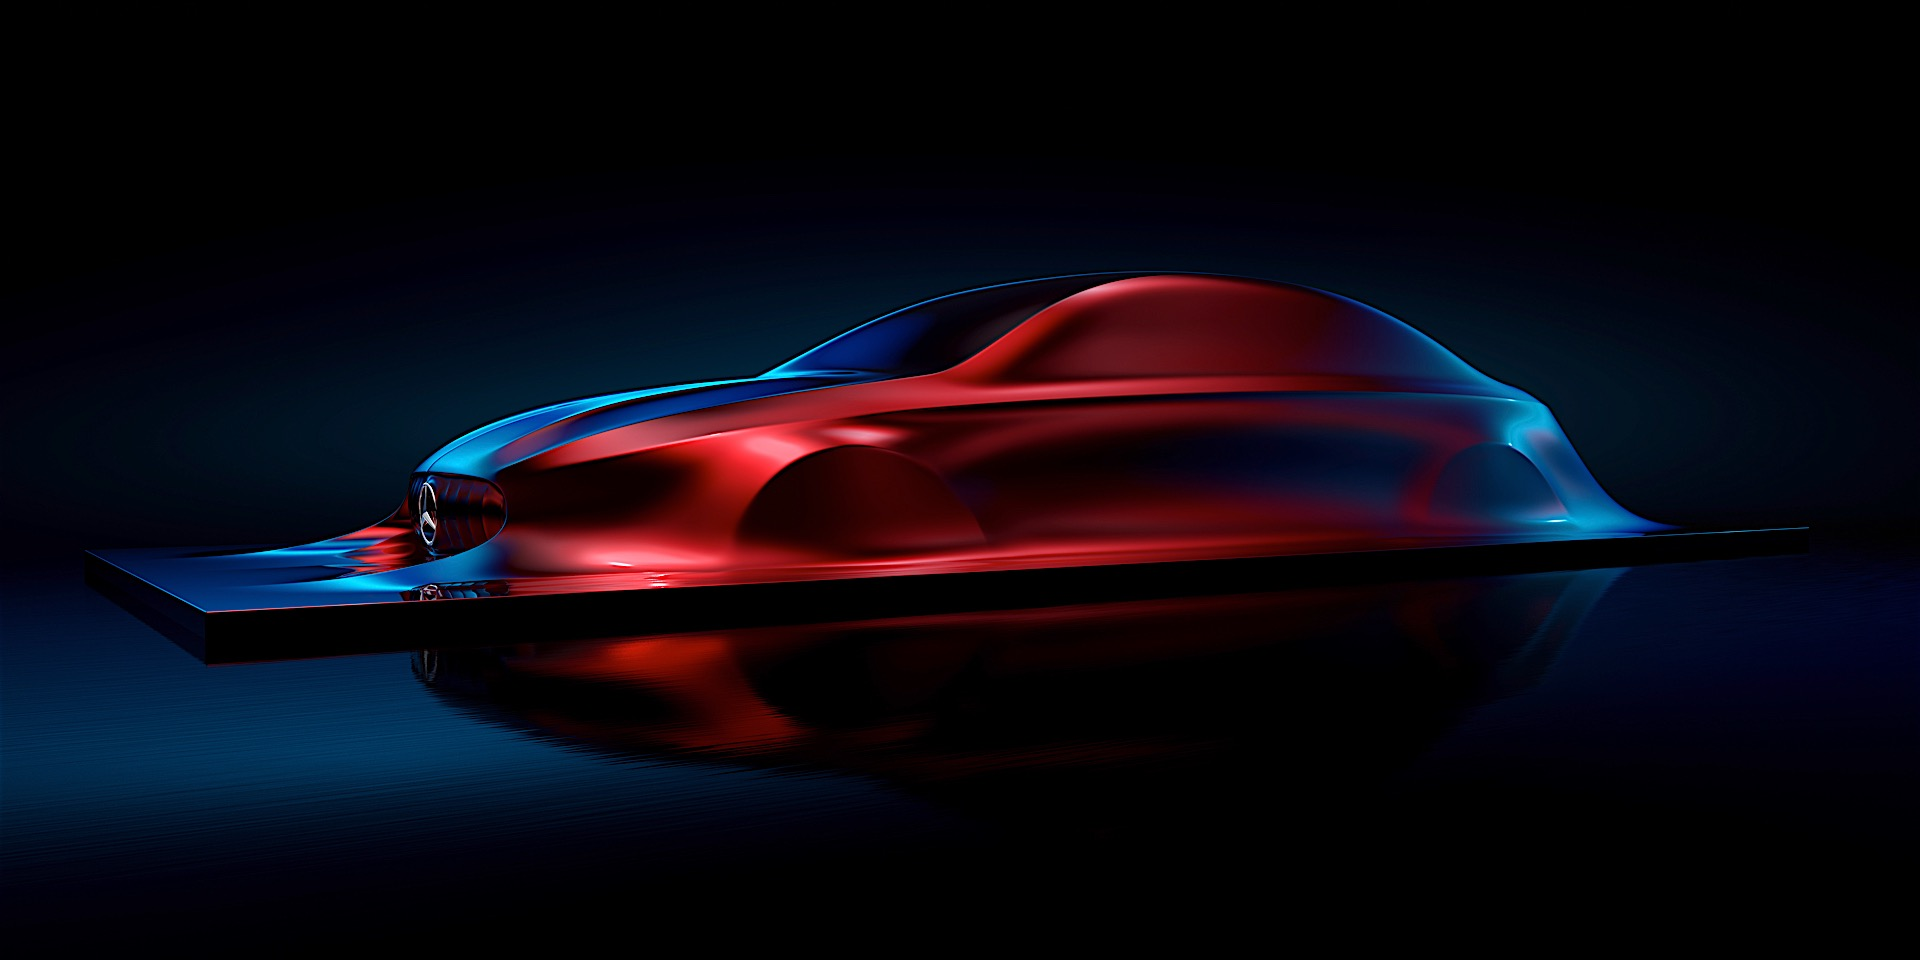 Mercedes-Benz redesigns its global product range; reveals first images